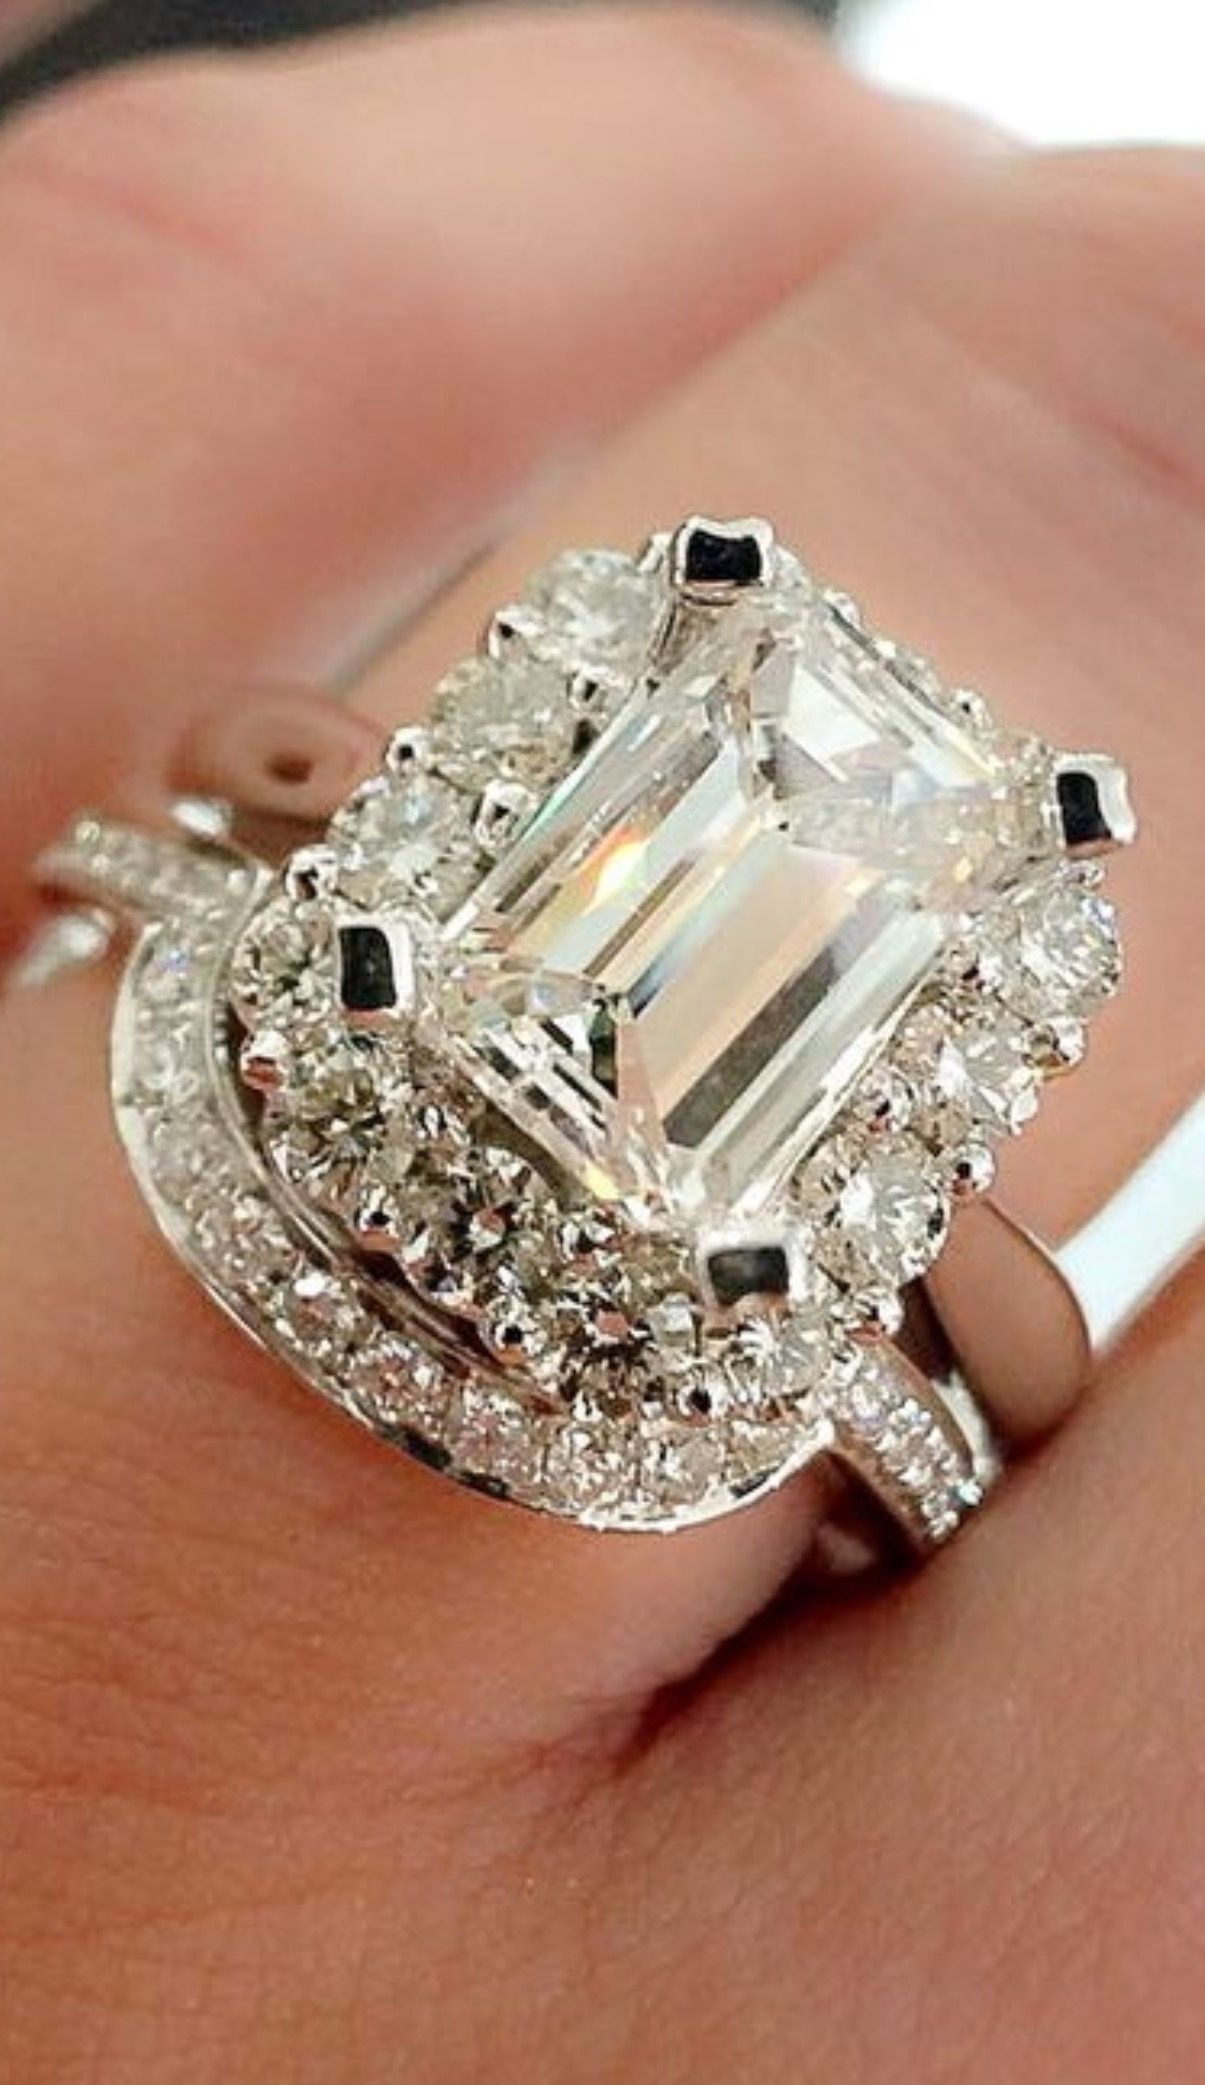 hei constrain diamond collections rings an with internally engagement ring id fmt ed fit tiffany flawless wid carat soleste